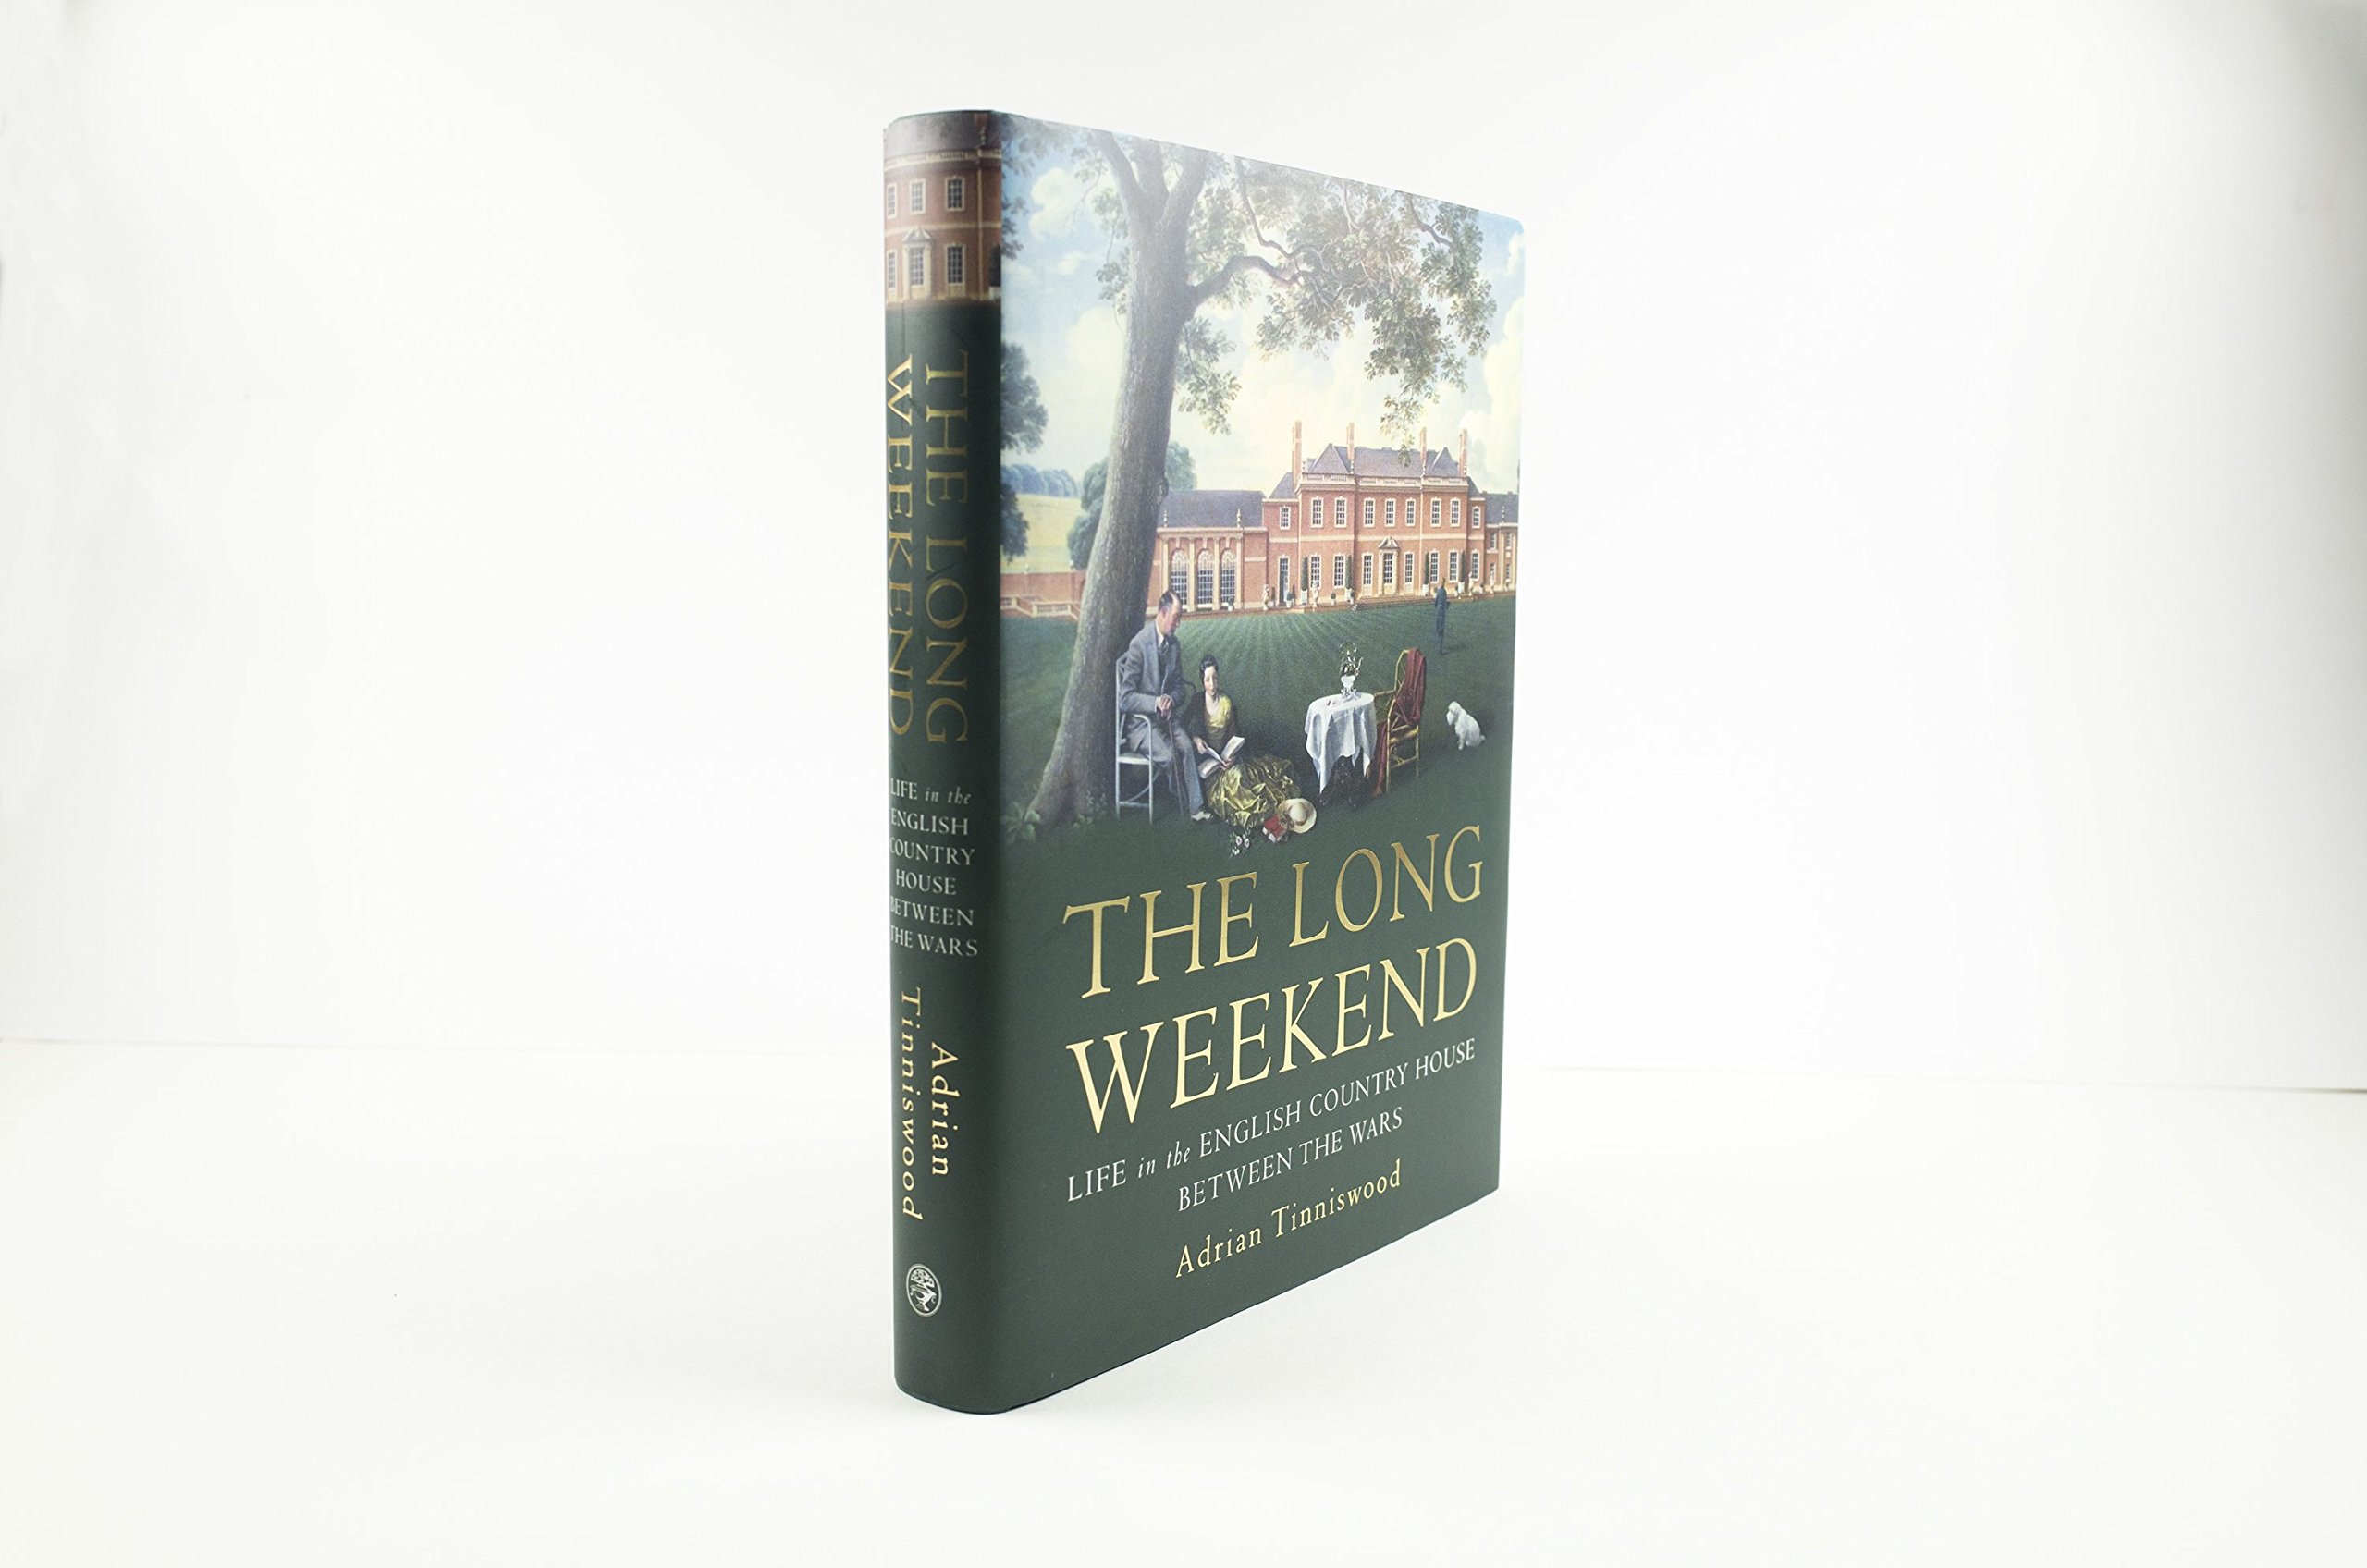 The Long Weekend: Life in the English Country House Between the Wars: Amazon.es: Adrian Tinniswood: Libros en idiomas extranjeros